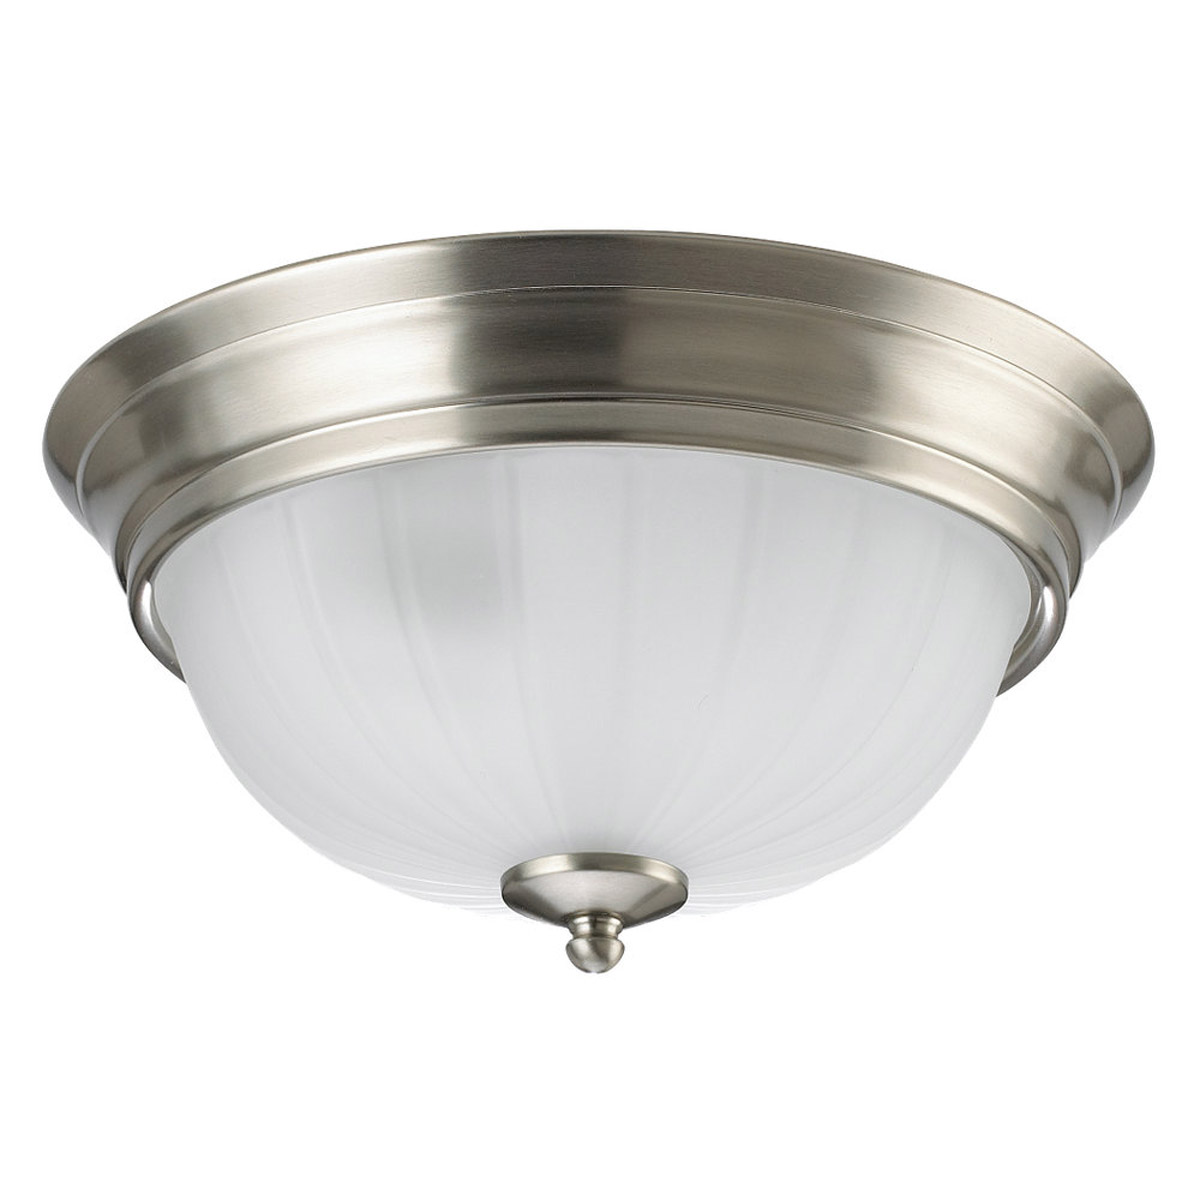 Sea Gull Lighting Floyd 2 Light Flush Mount in Brushed Nickel 79505BLE-962